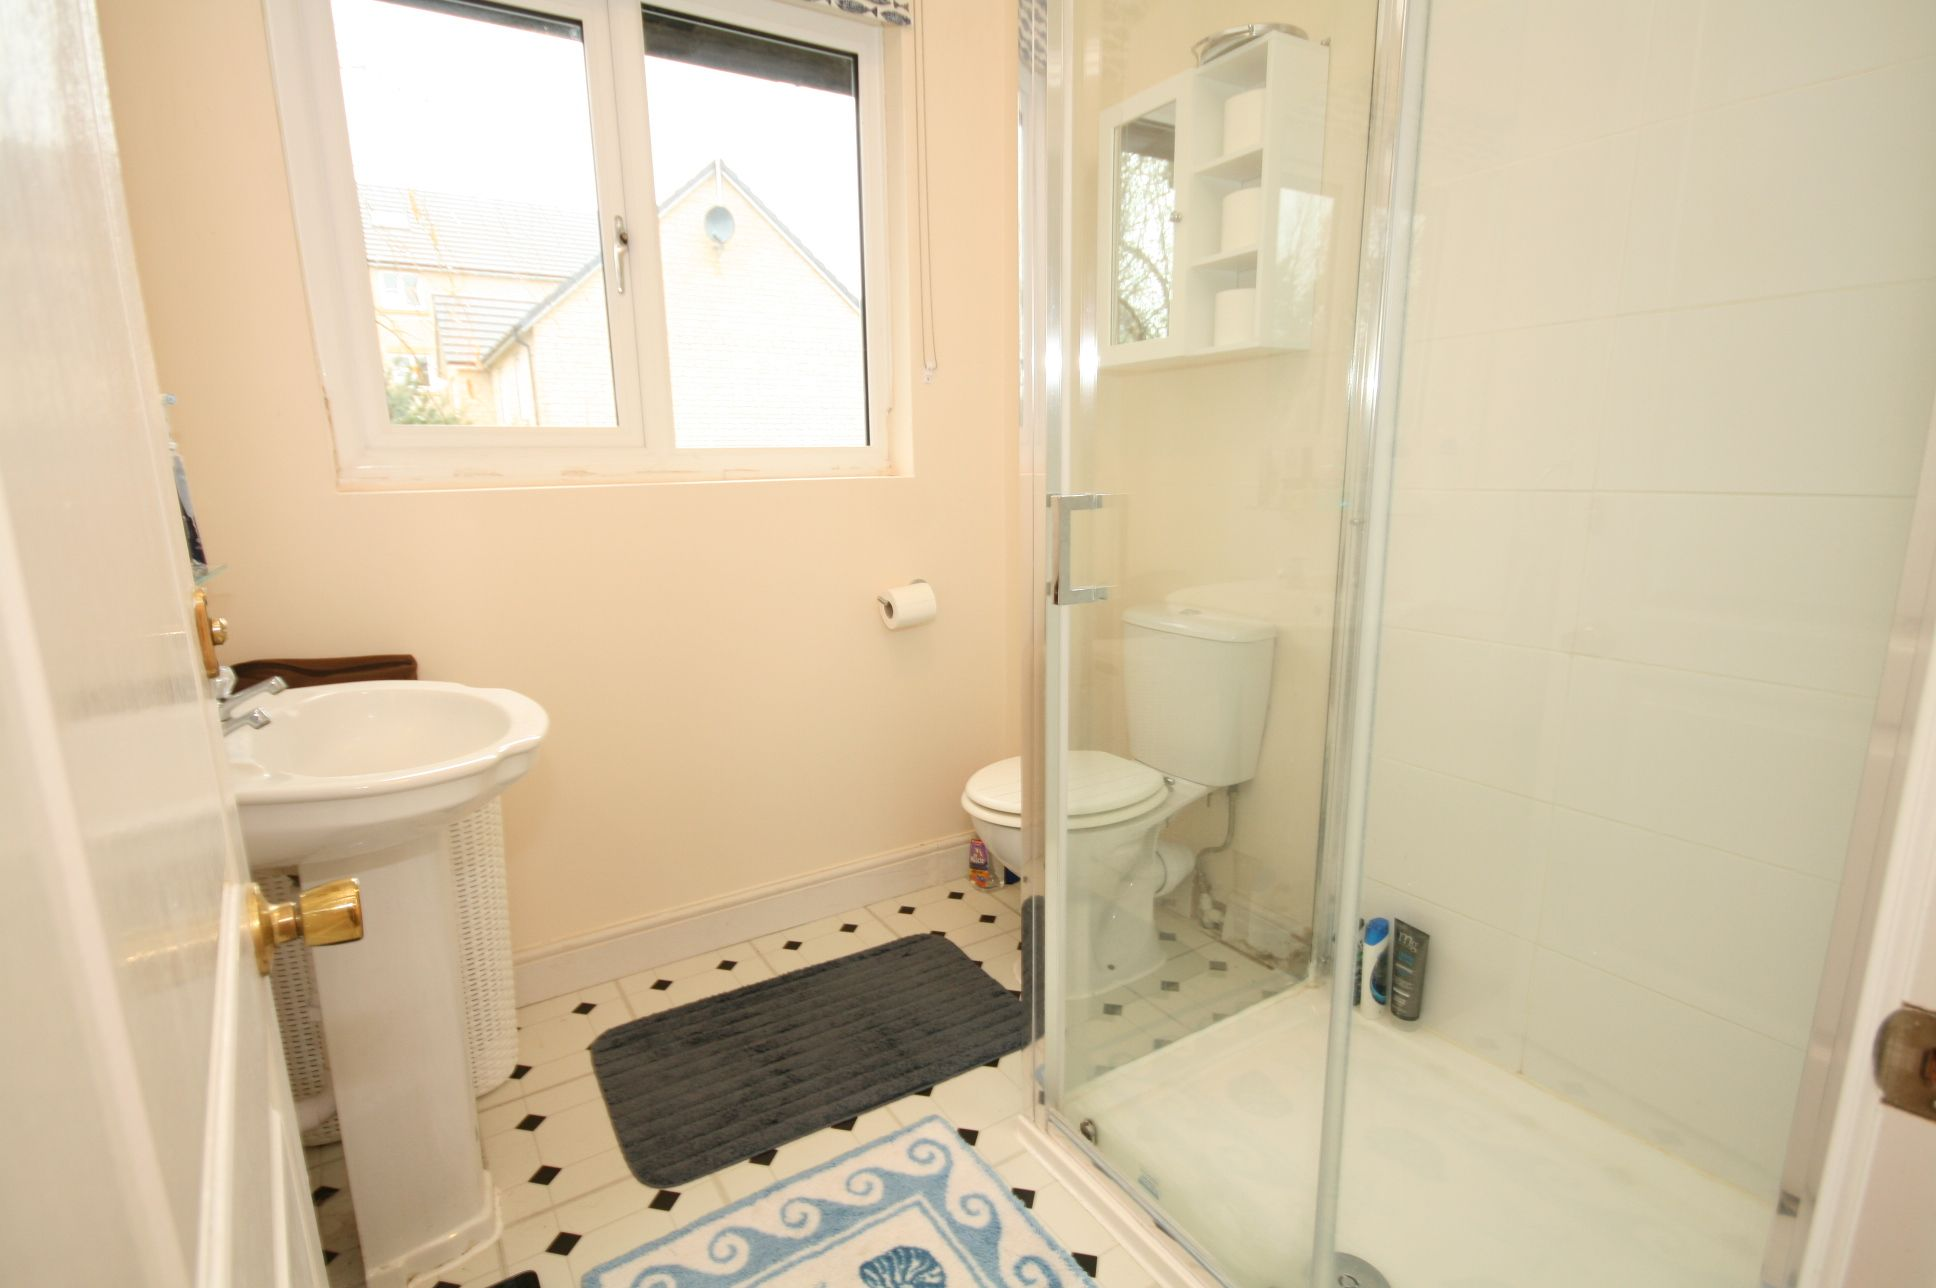 2 Bedroom End Terraced House For Sale - Shower room